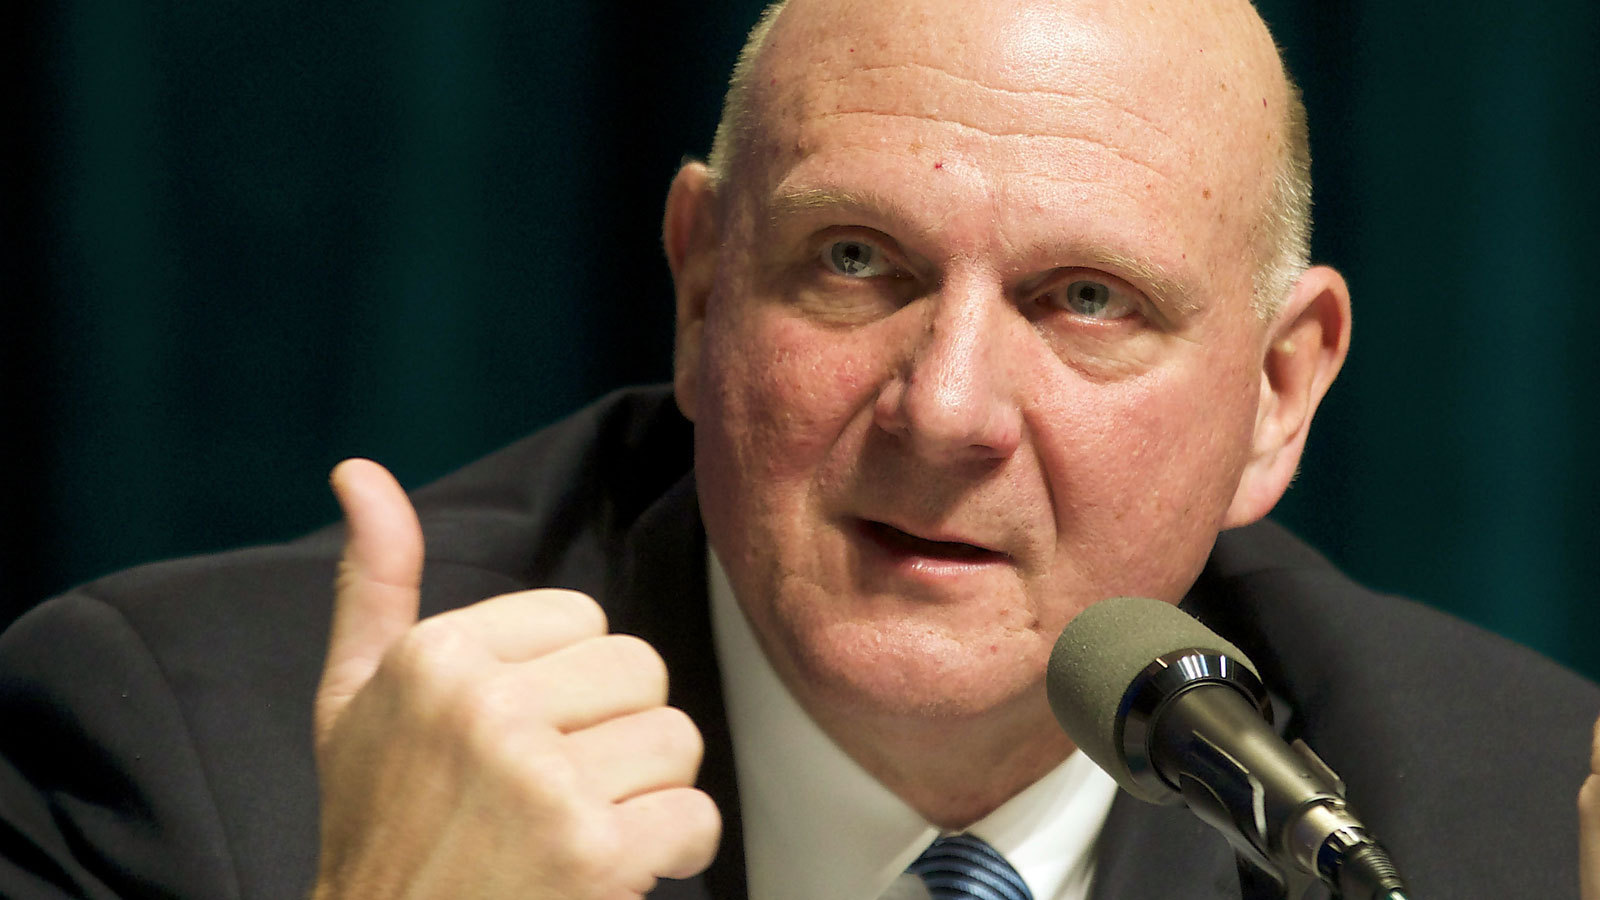 Steve Ballmer is officially new owner of Clippers NBA